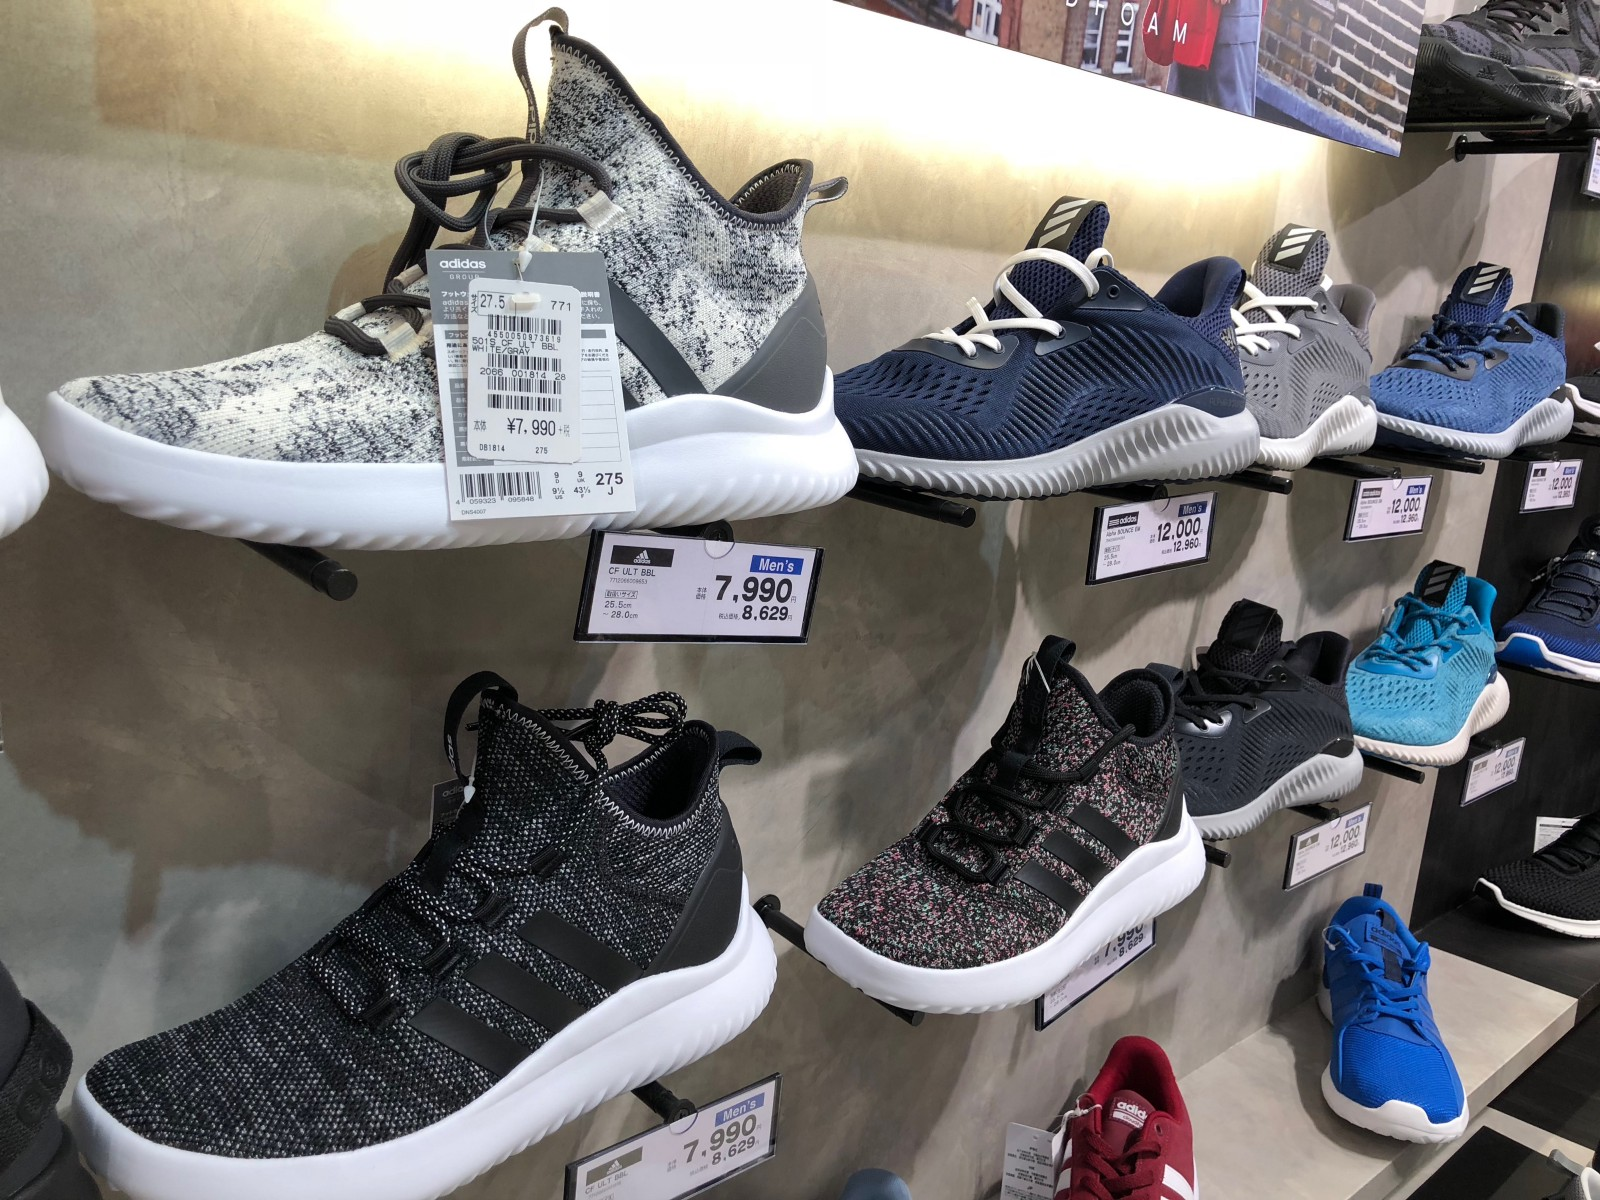 a3c5c92d They deal in most of the famous brands sneakers such as Adidas, Nike,Reebok,  Converse, Puma, etc. There are lots of discounted products on the total 5  ...